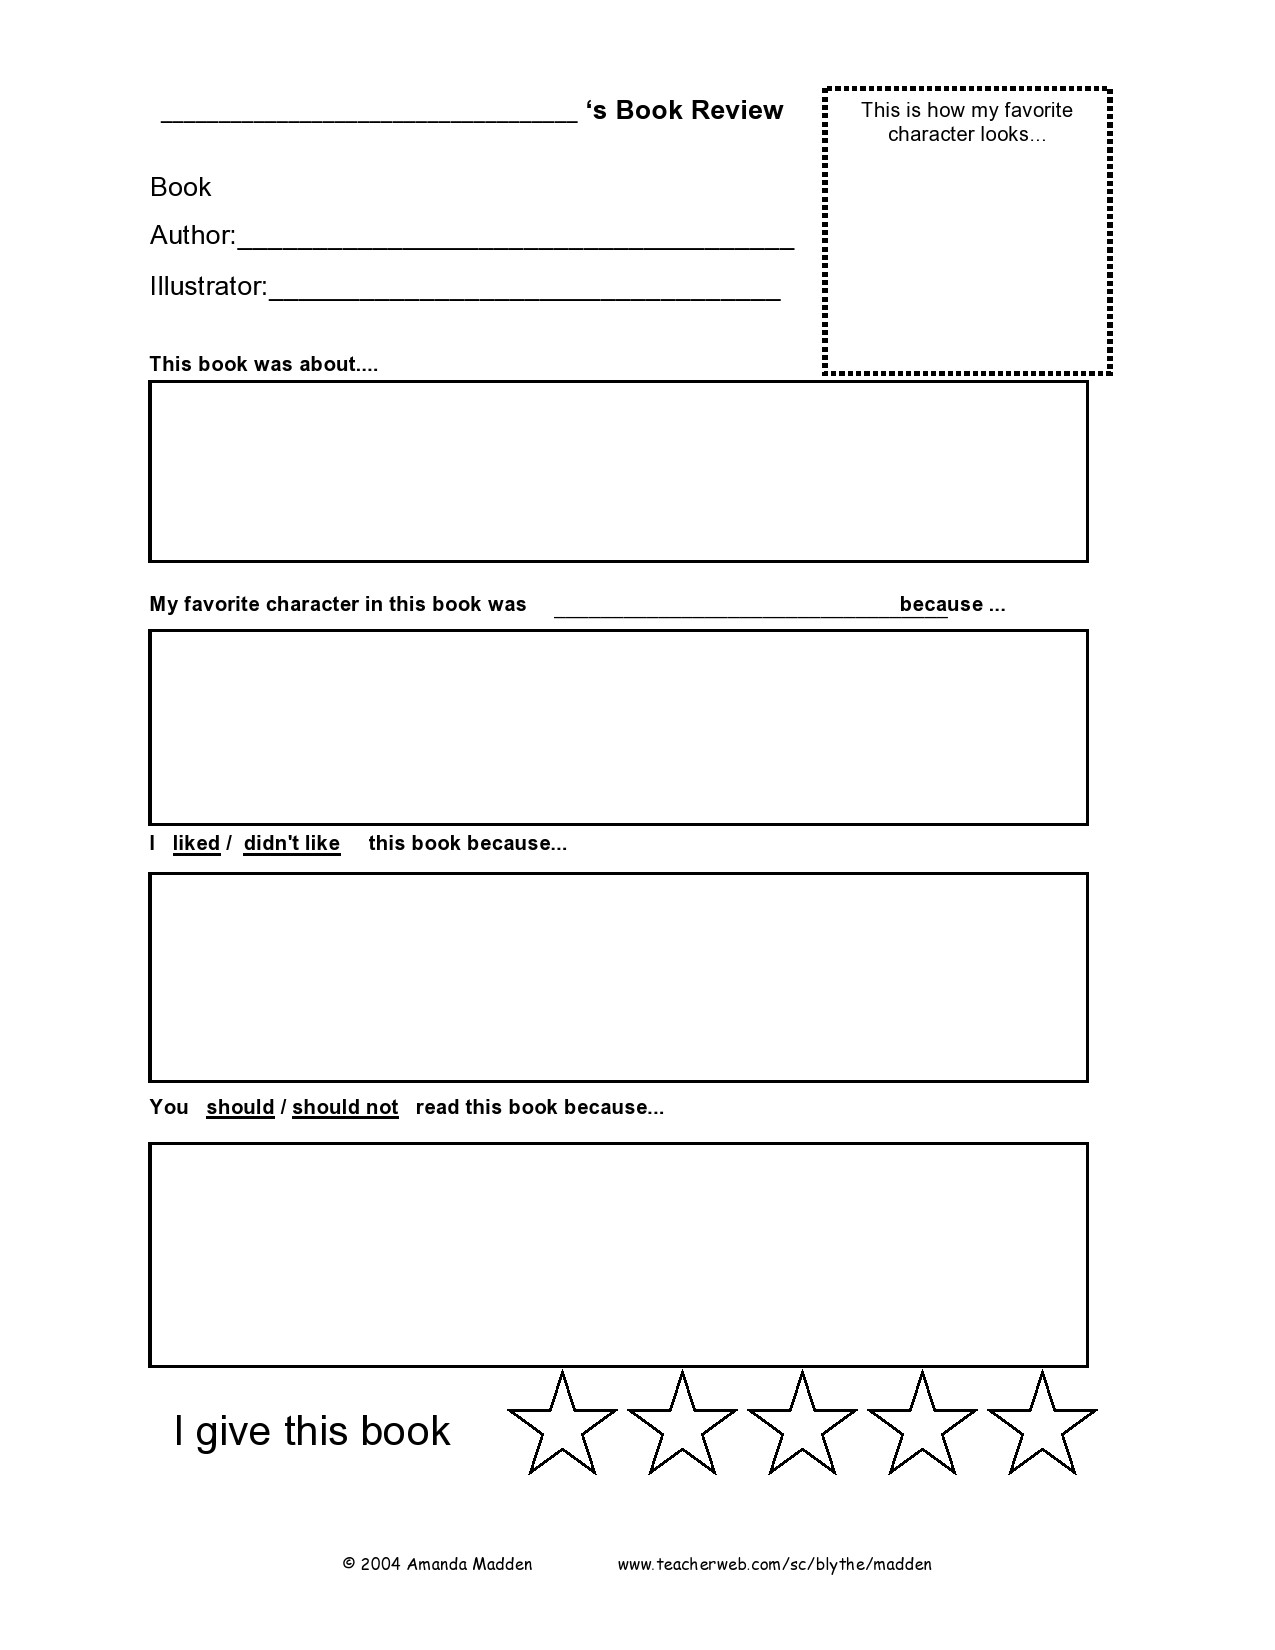 Free book review template 20